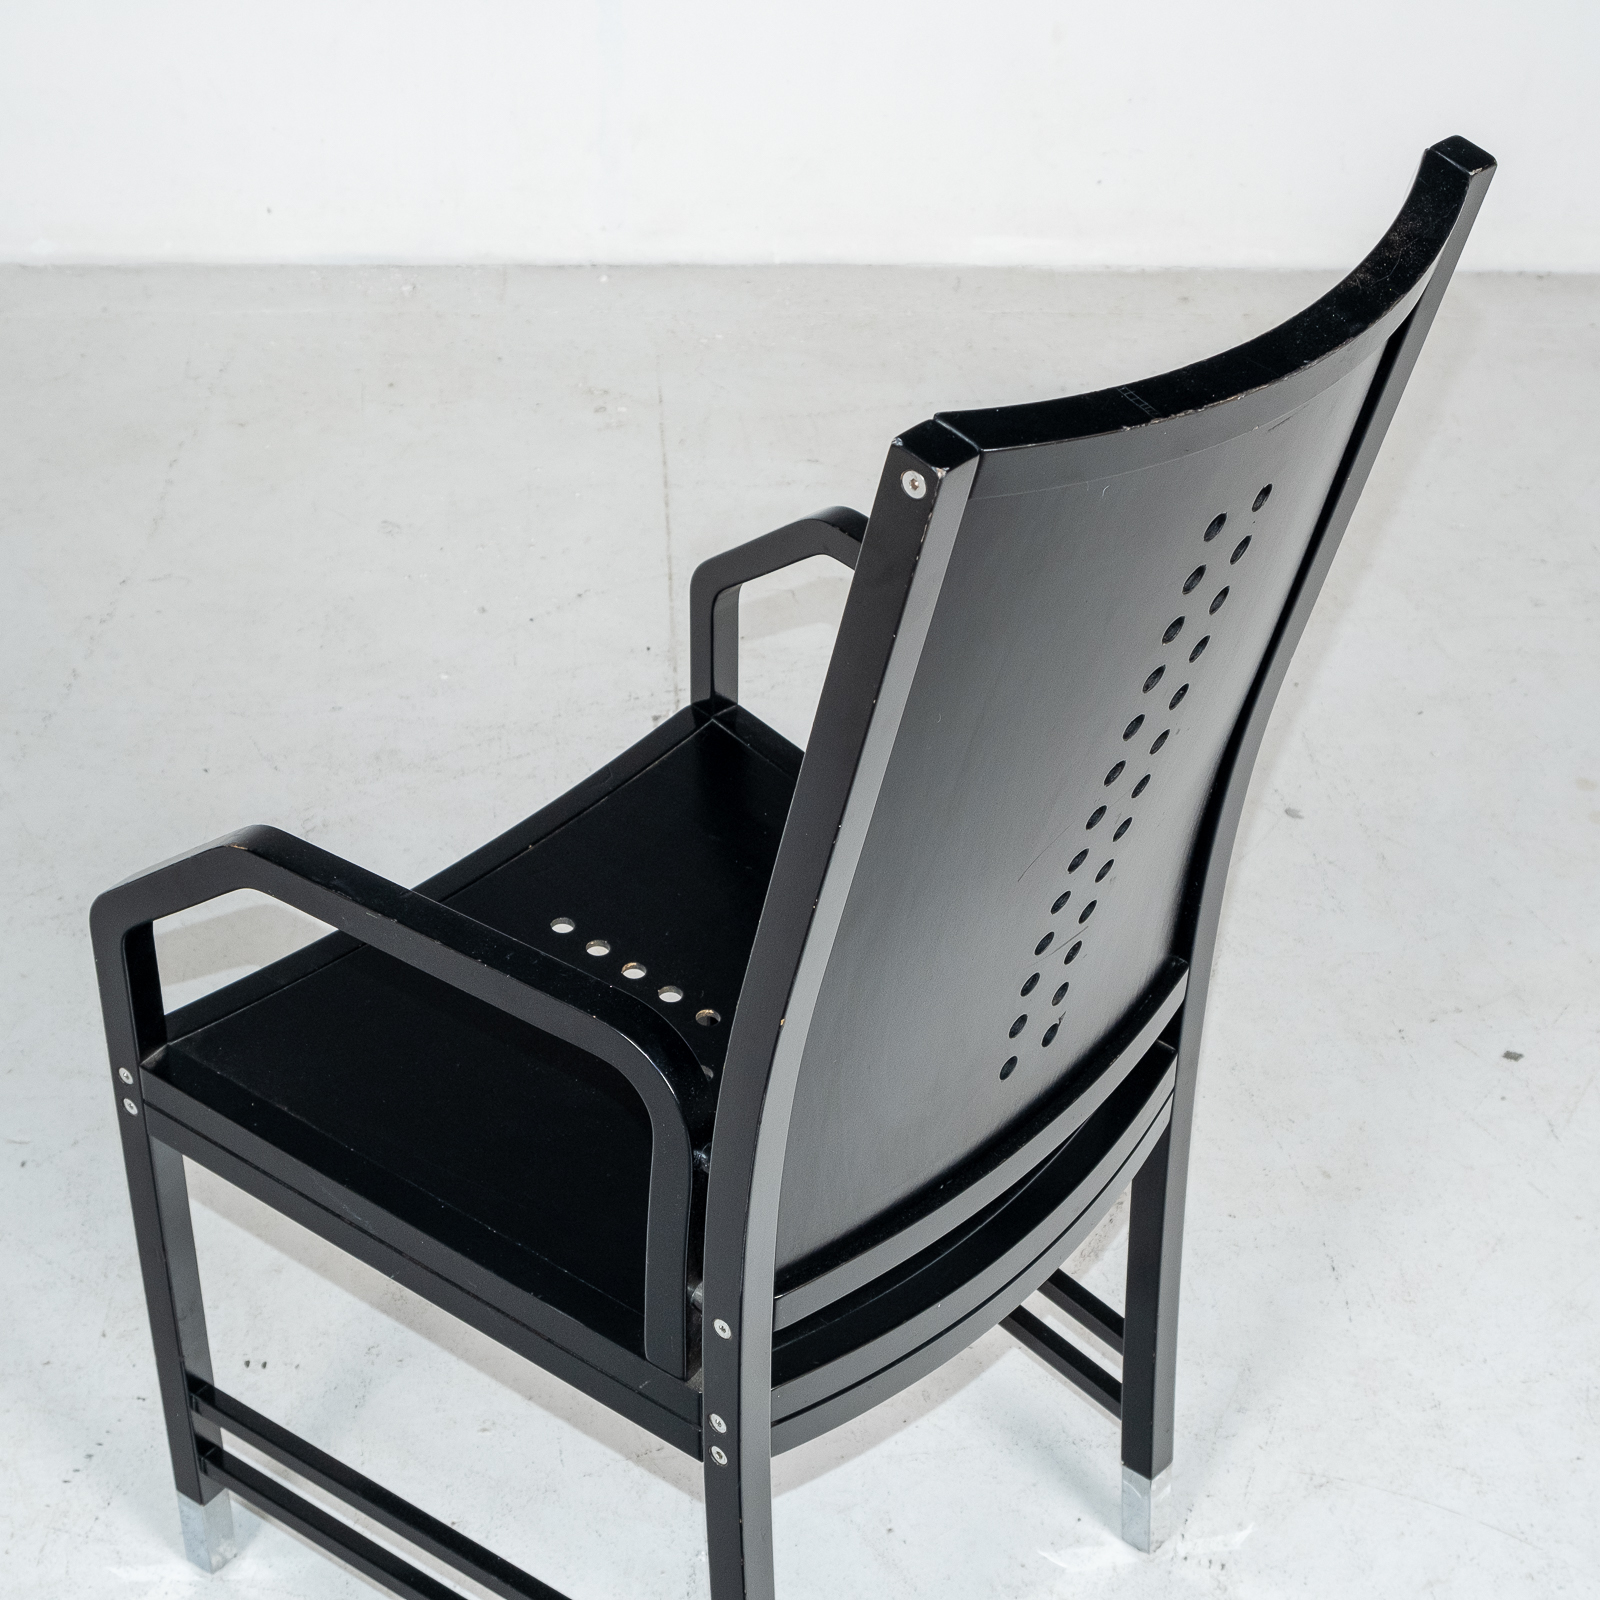 Thonet Chair In Black Hoffmann Style, 1980s, Germany05